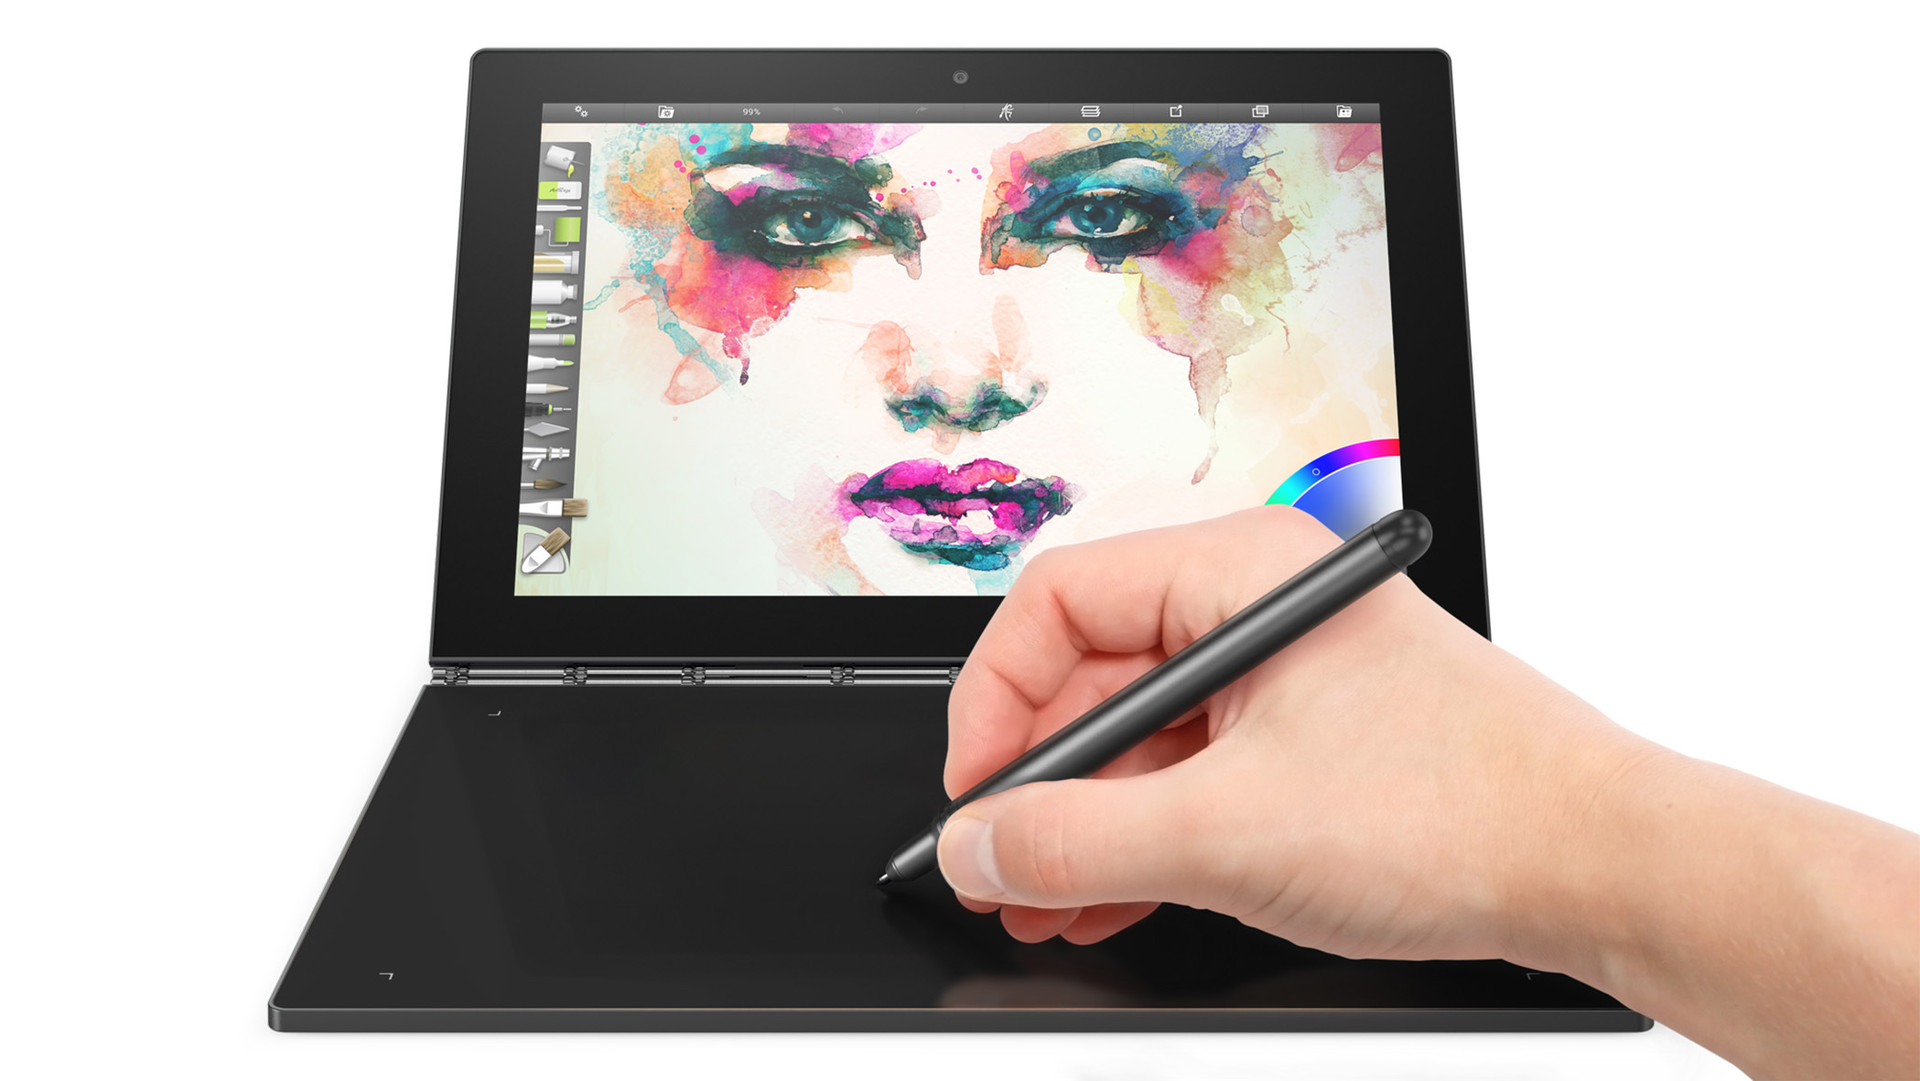 Lenovo Yoga Book 2-in-1